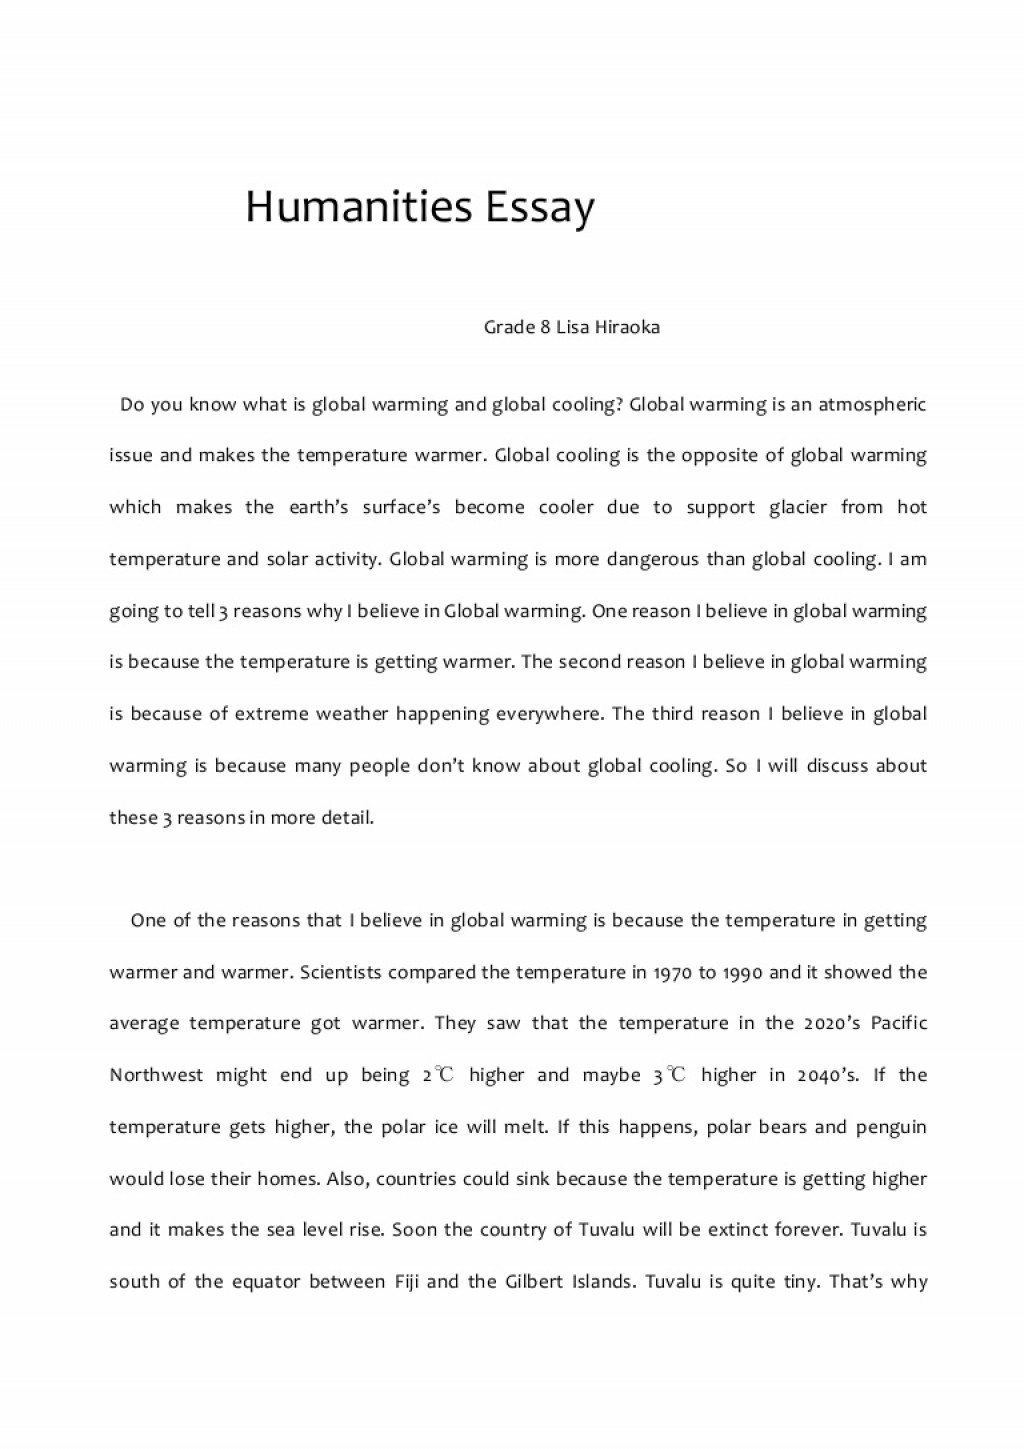 011 I Believe Essay Topics Best Narrative This Samples Humanitiesessay Phpapp02 Thumbn Good Template Impressive Example Topic Ideas Examples College Large